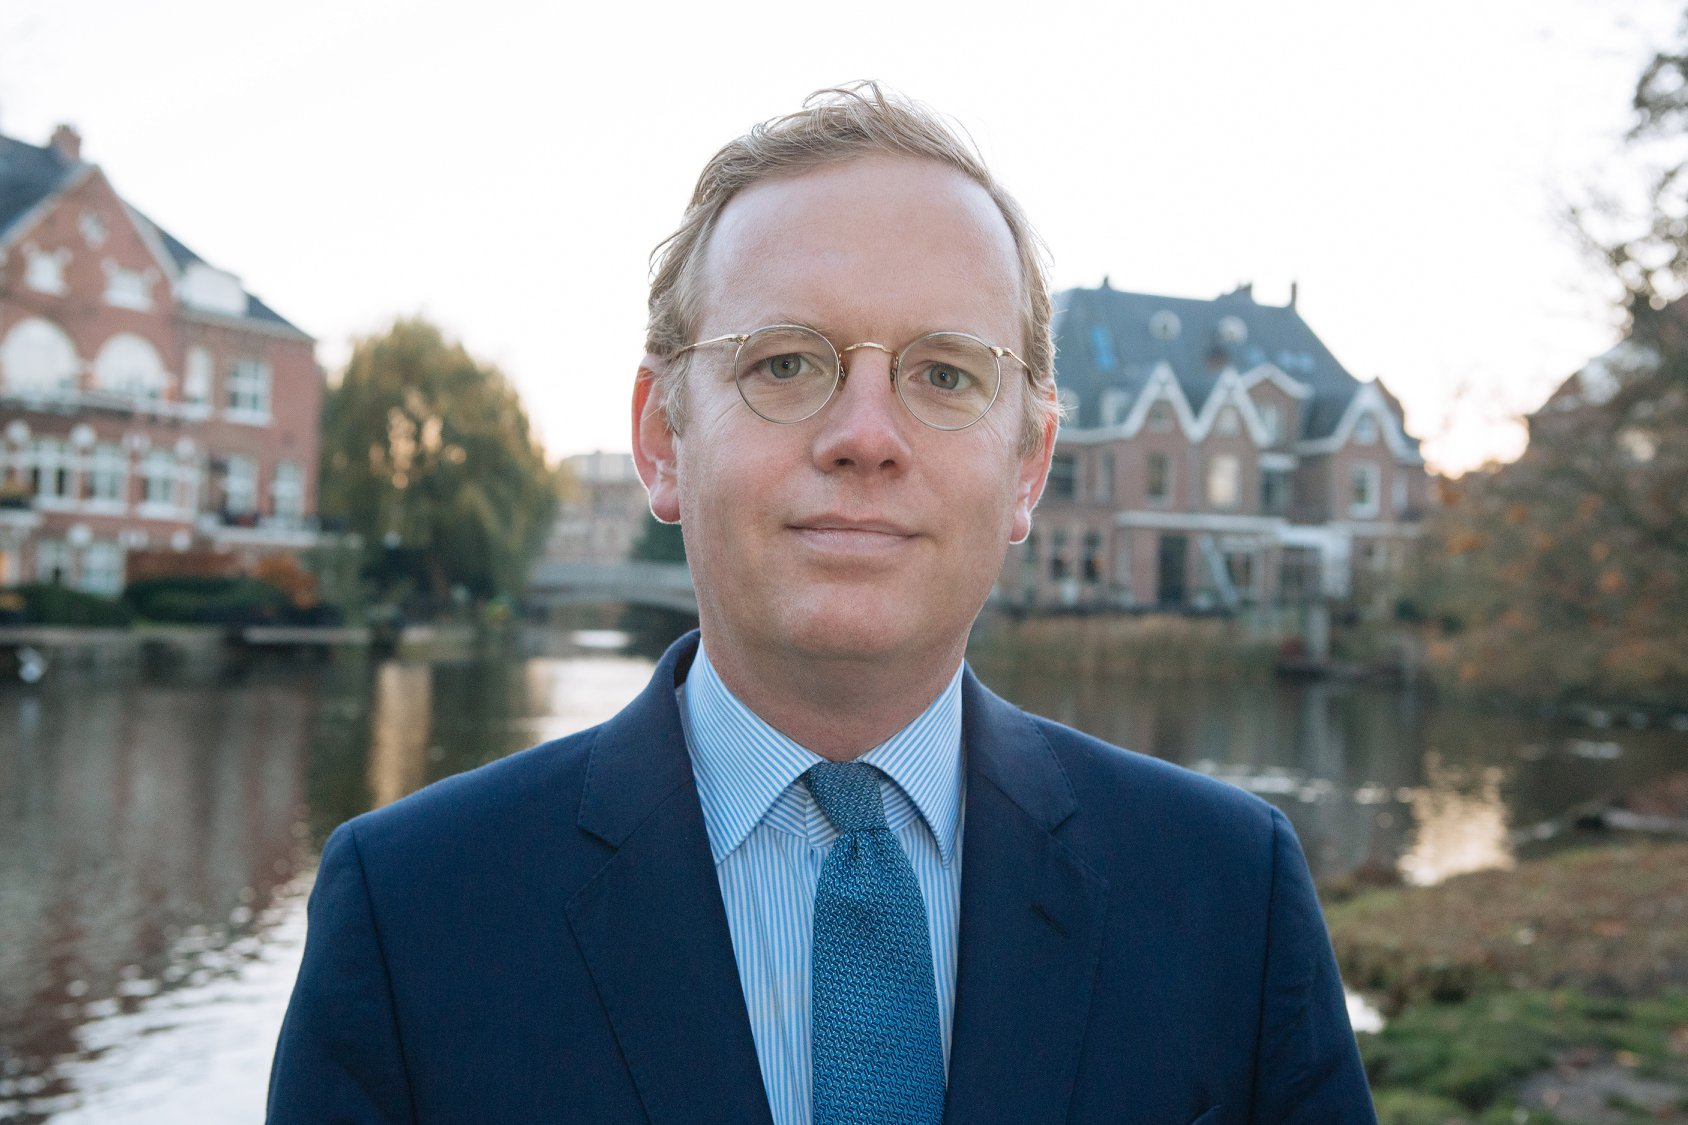 Corporate portrait - Amsterdam